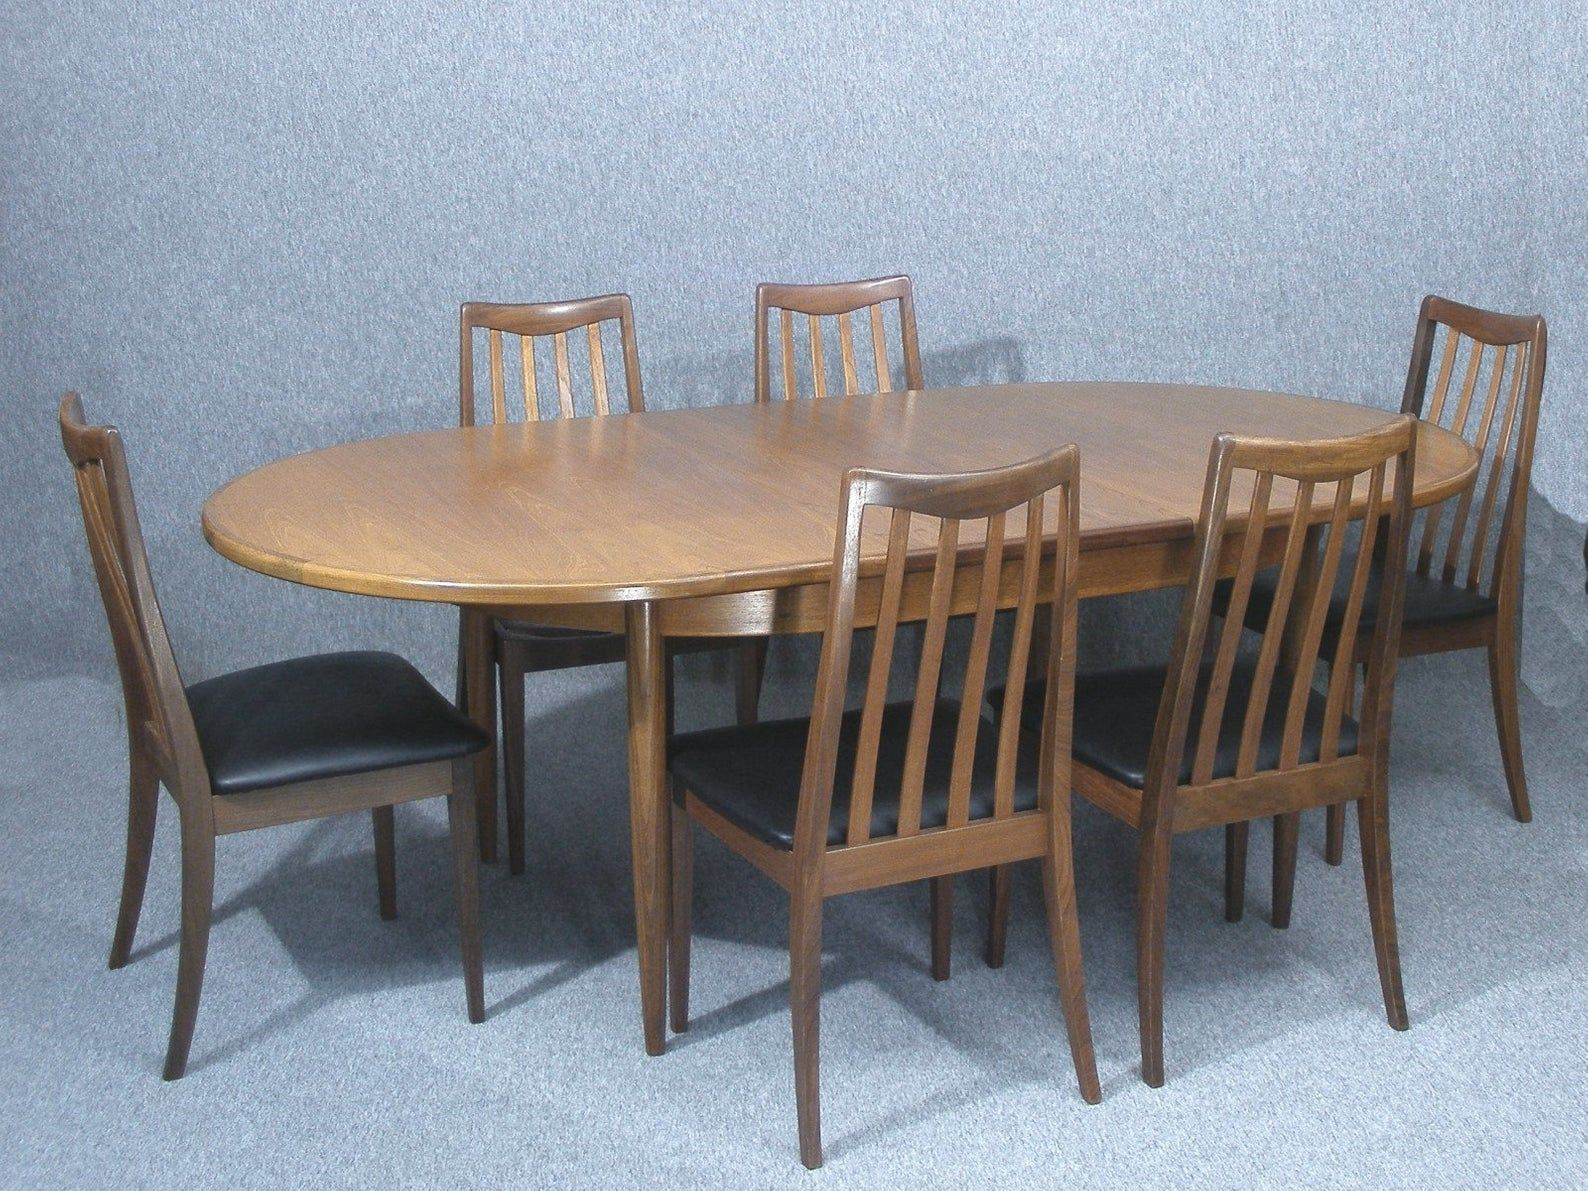 G Plan Extending Dining Table Six Chairs Vintage Teak Table And Chairs Dining Table And Chairs G Plan Table And Chairs Free Delivery Dining Table Extendable Dining Table Oval Table